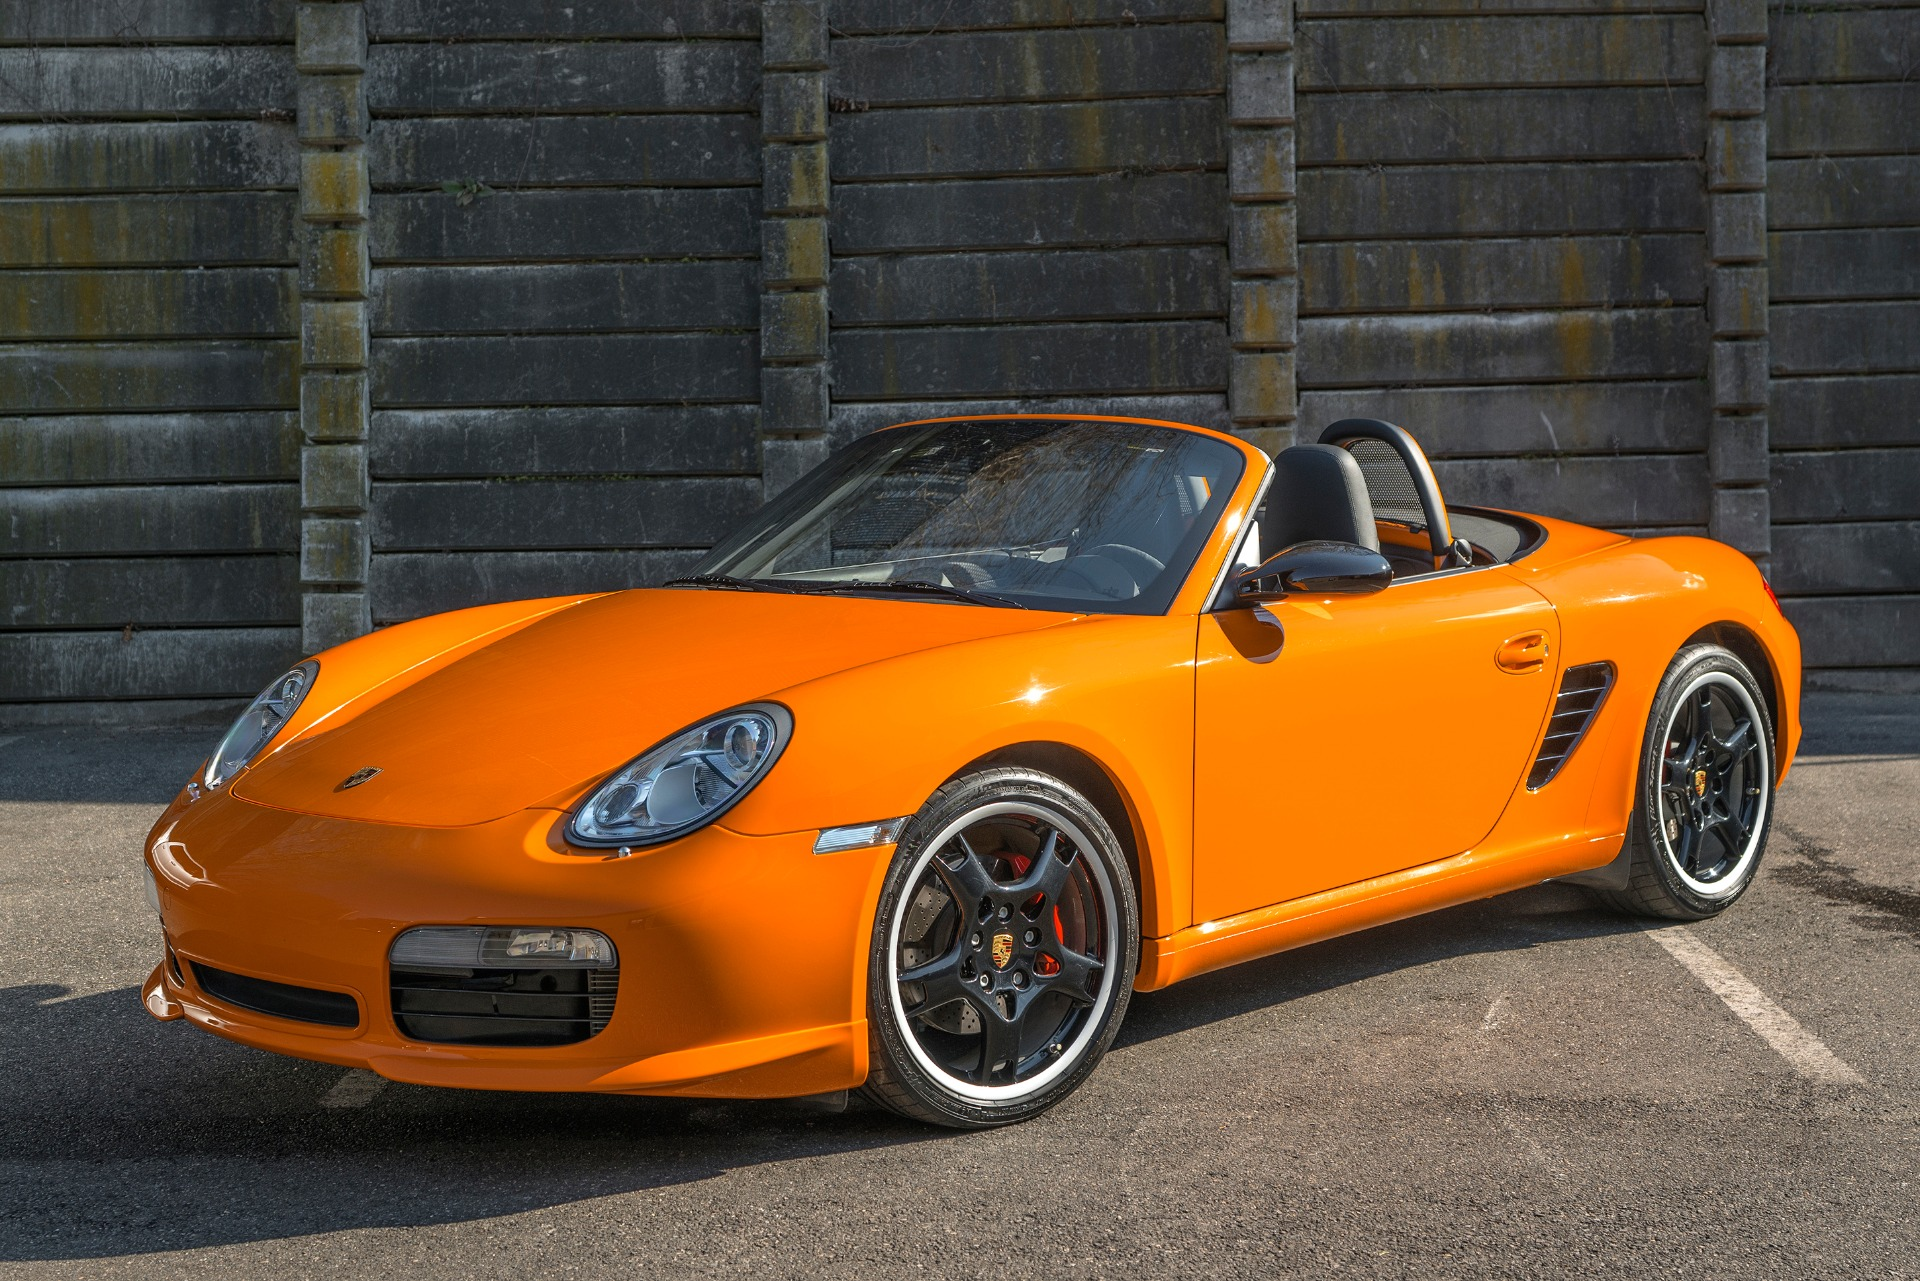 2008 porsche boxster s limited edition s stock 1487 for sale near oyster bay ny ny porsche. Black Bedroom Furniture Sets. Home Design Ideas